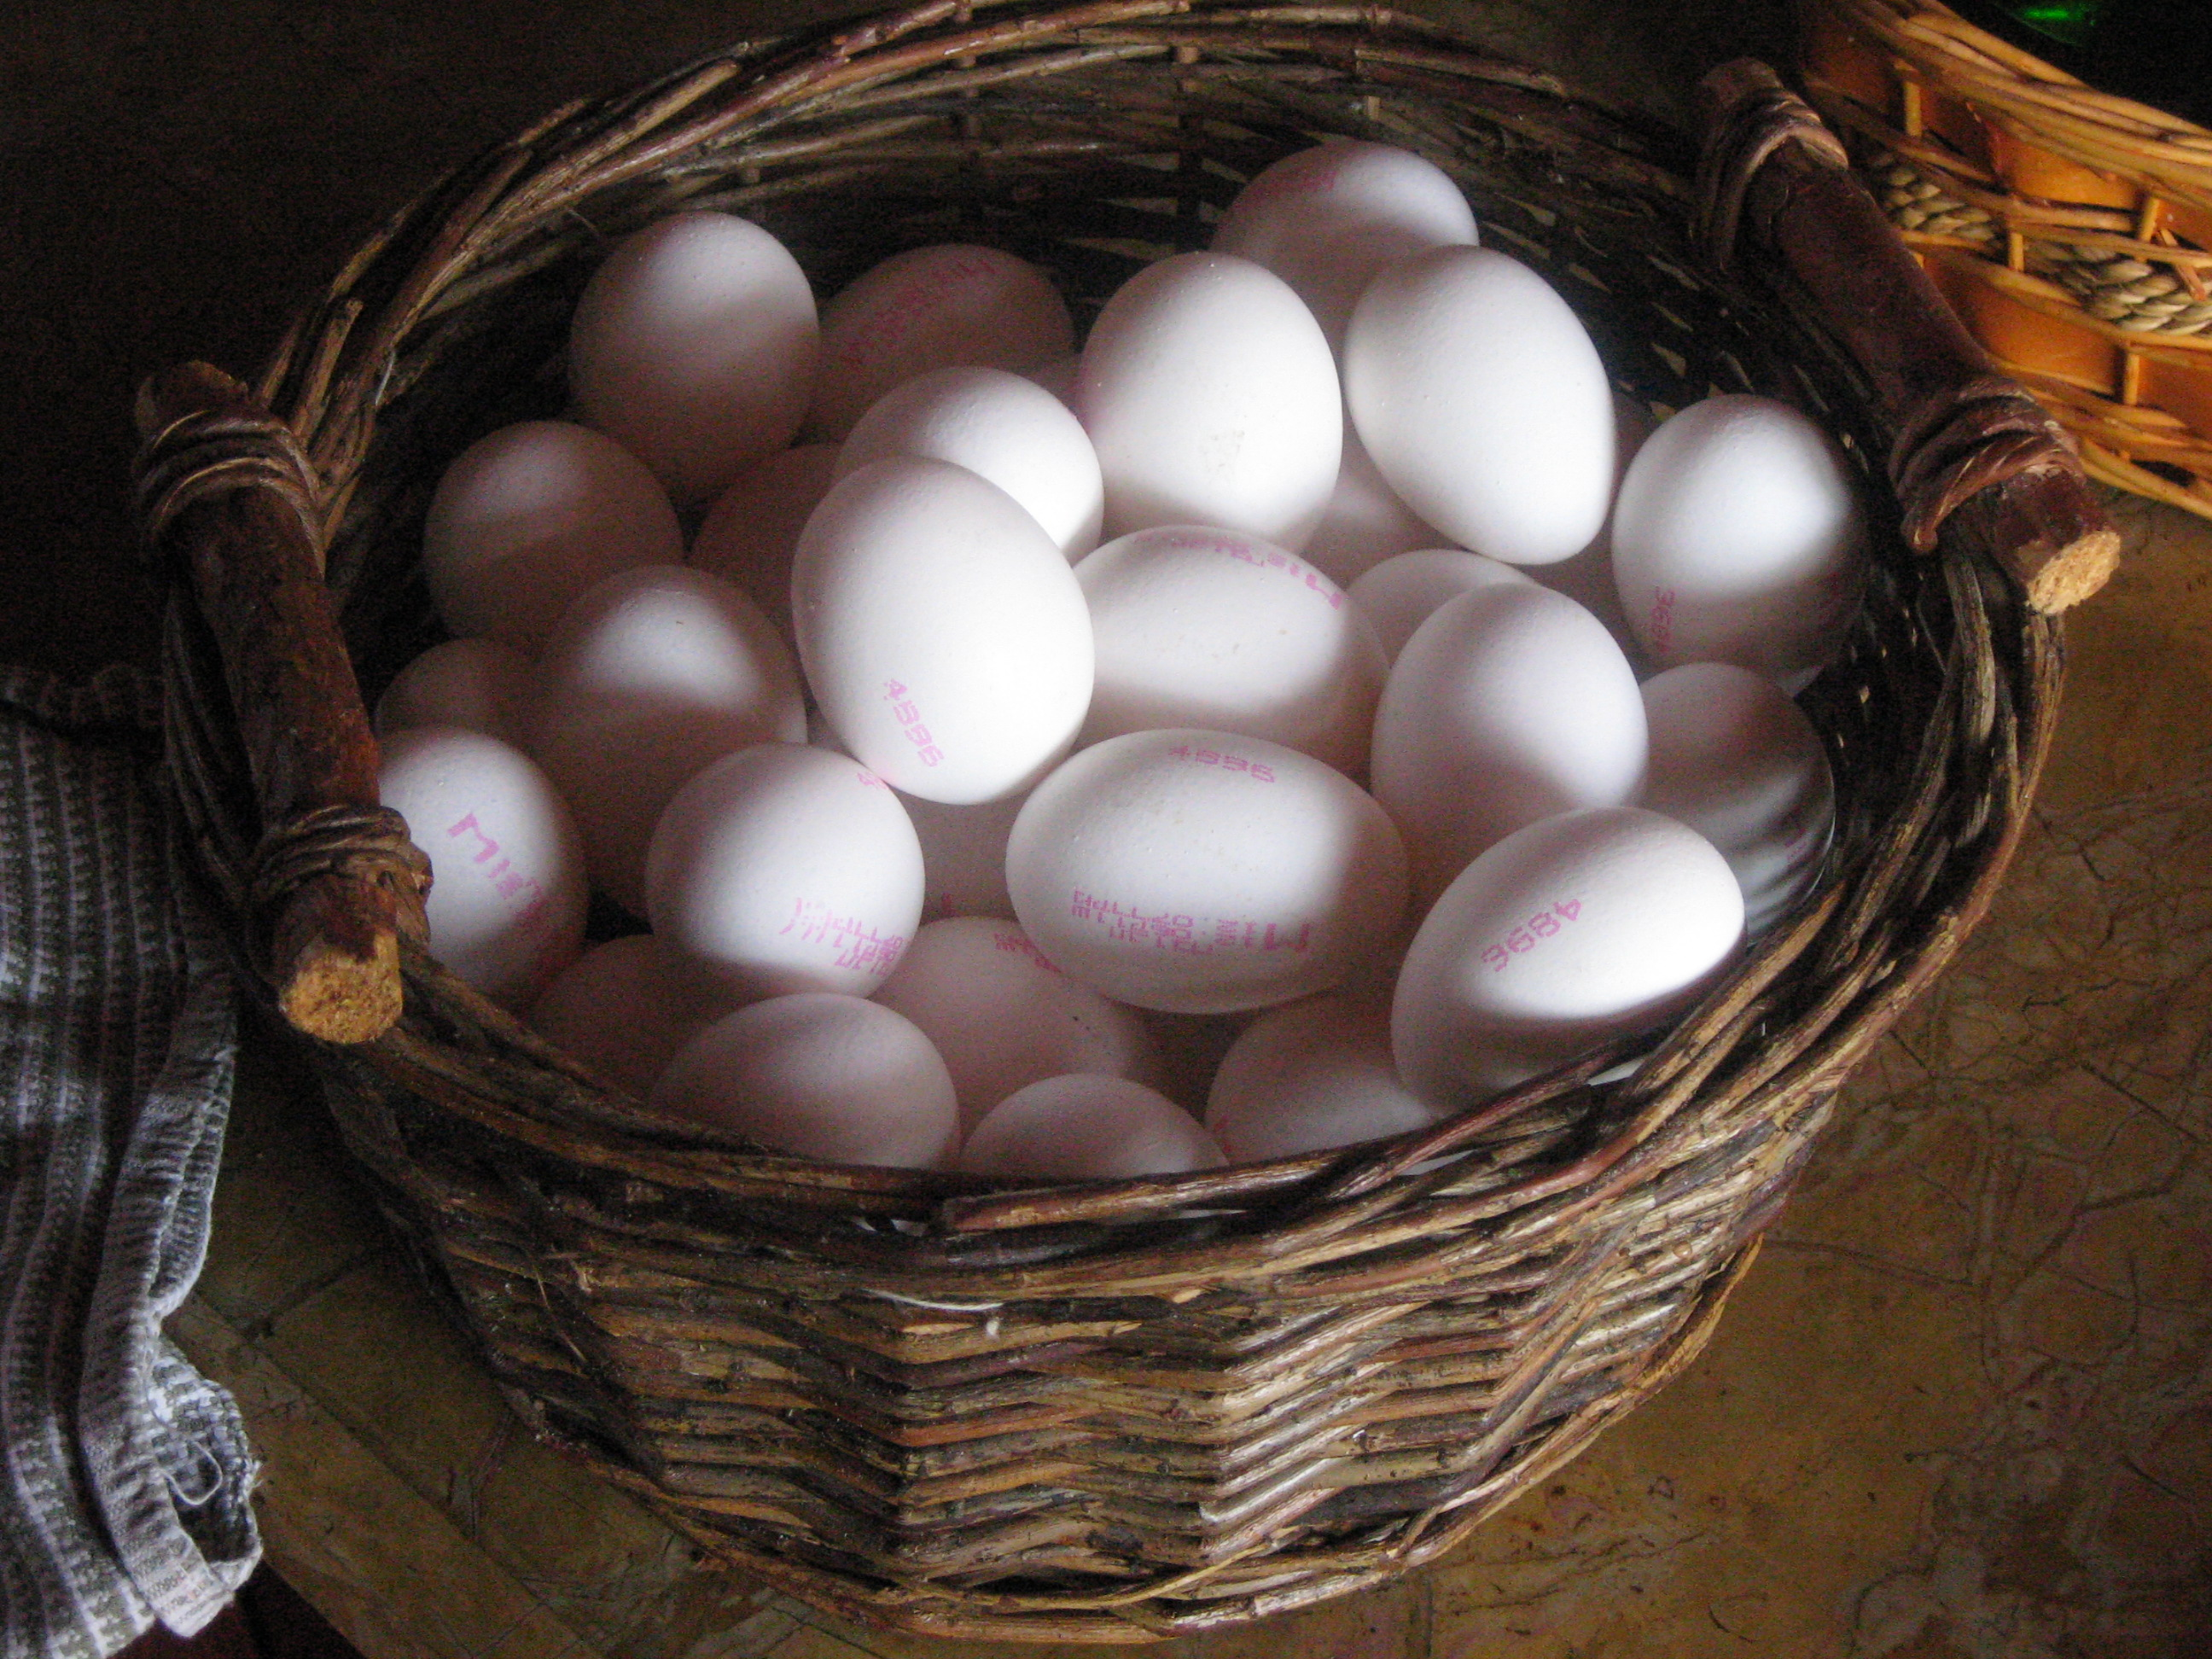 Local Eggs, Industrial Eggs, and Salmonella